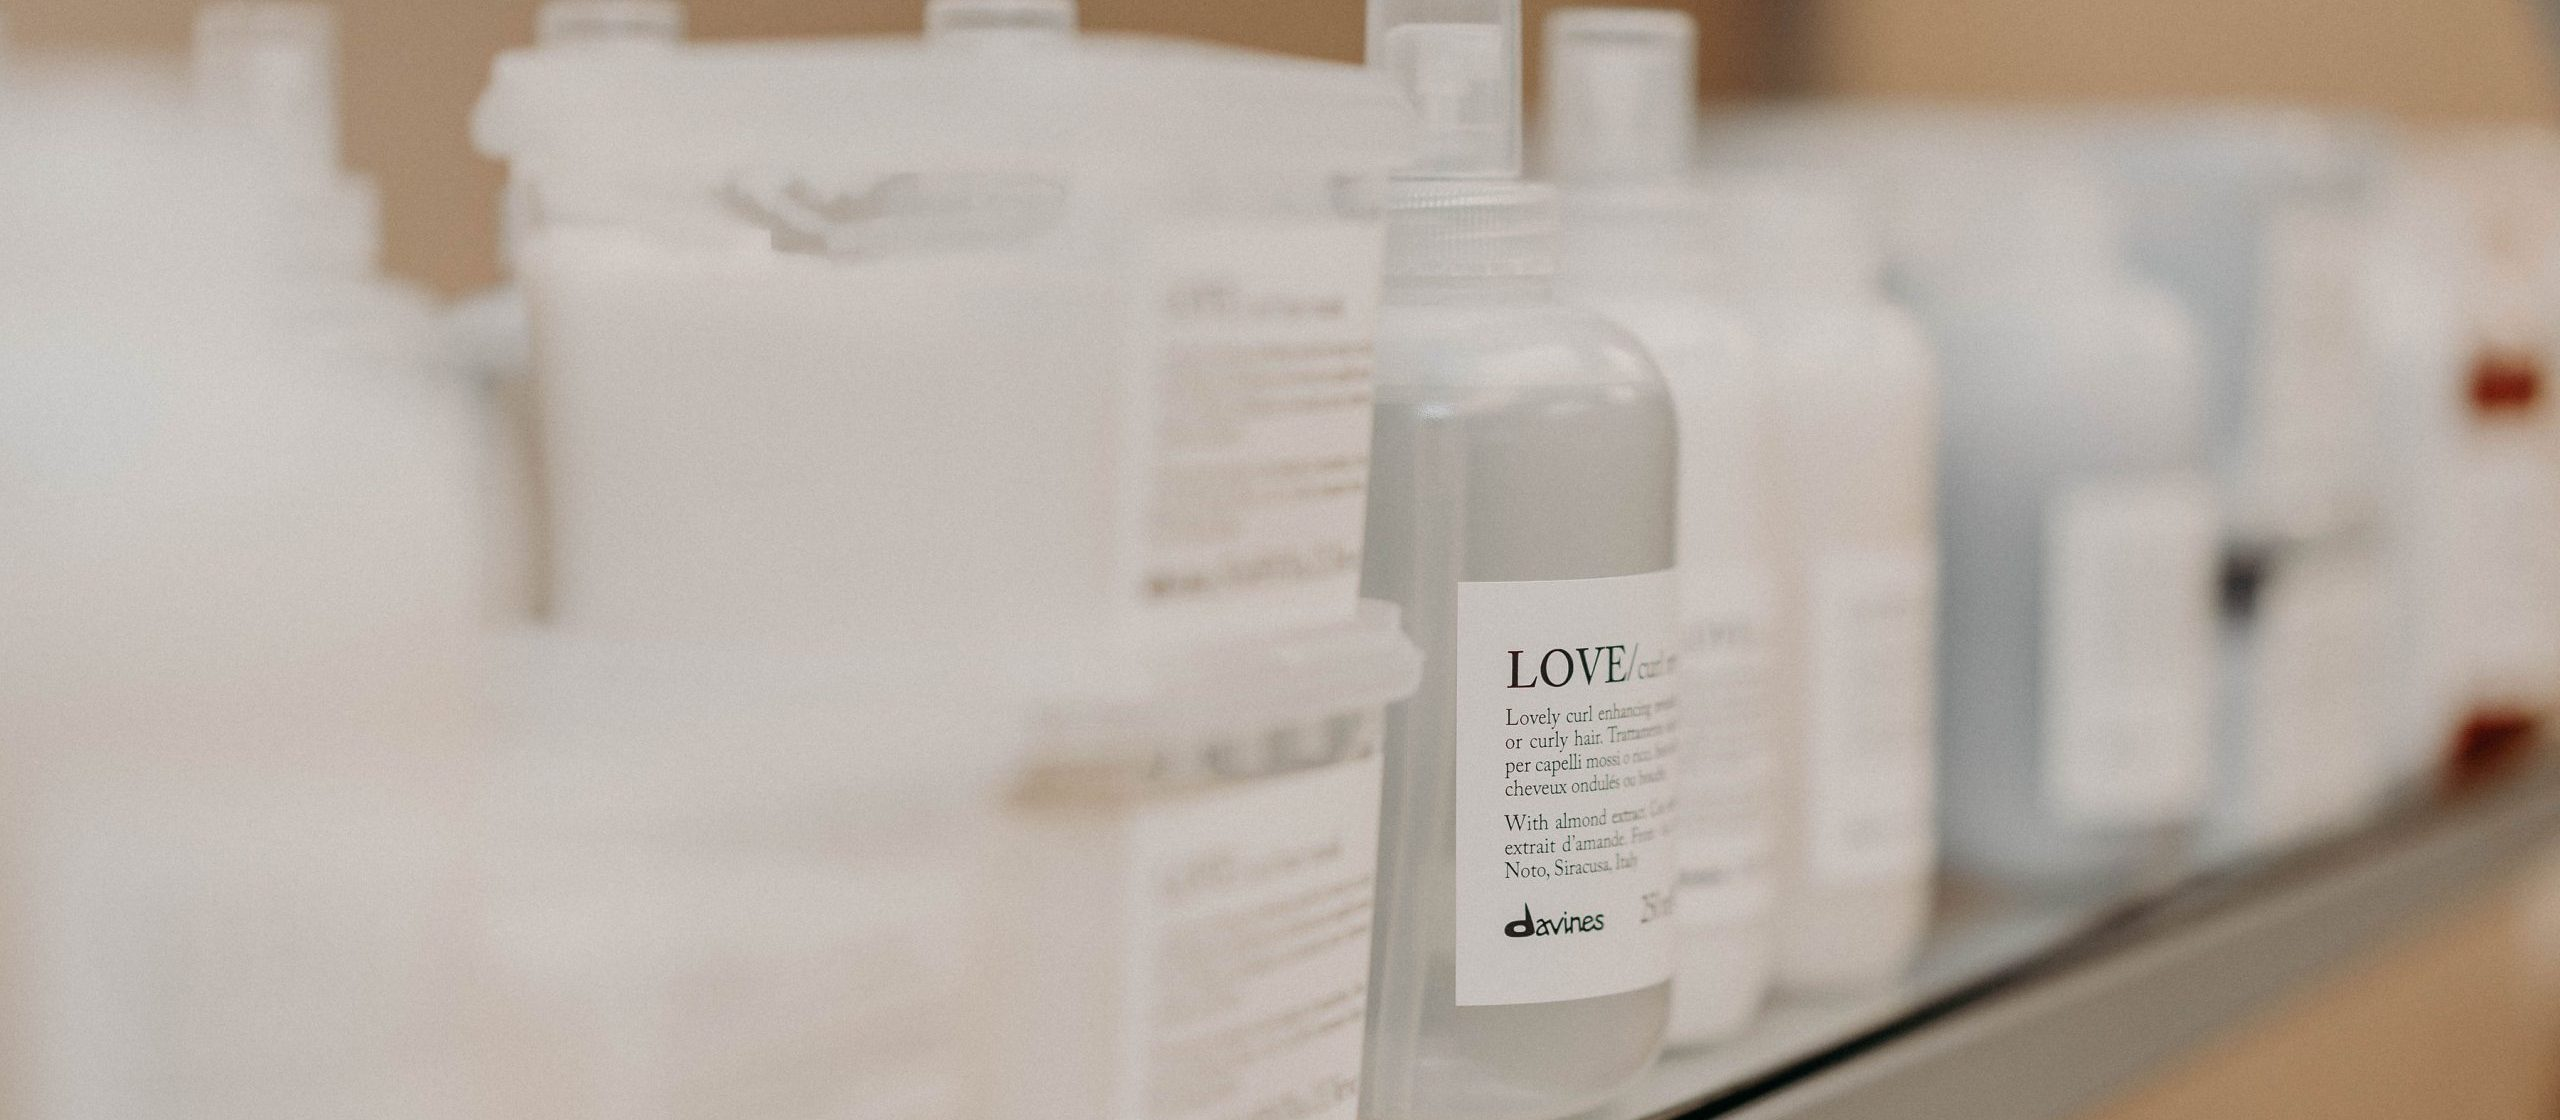 Davines and Link to Salon Interactive